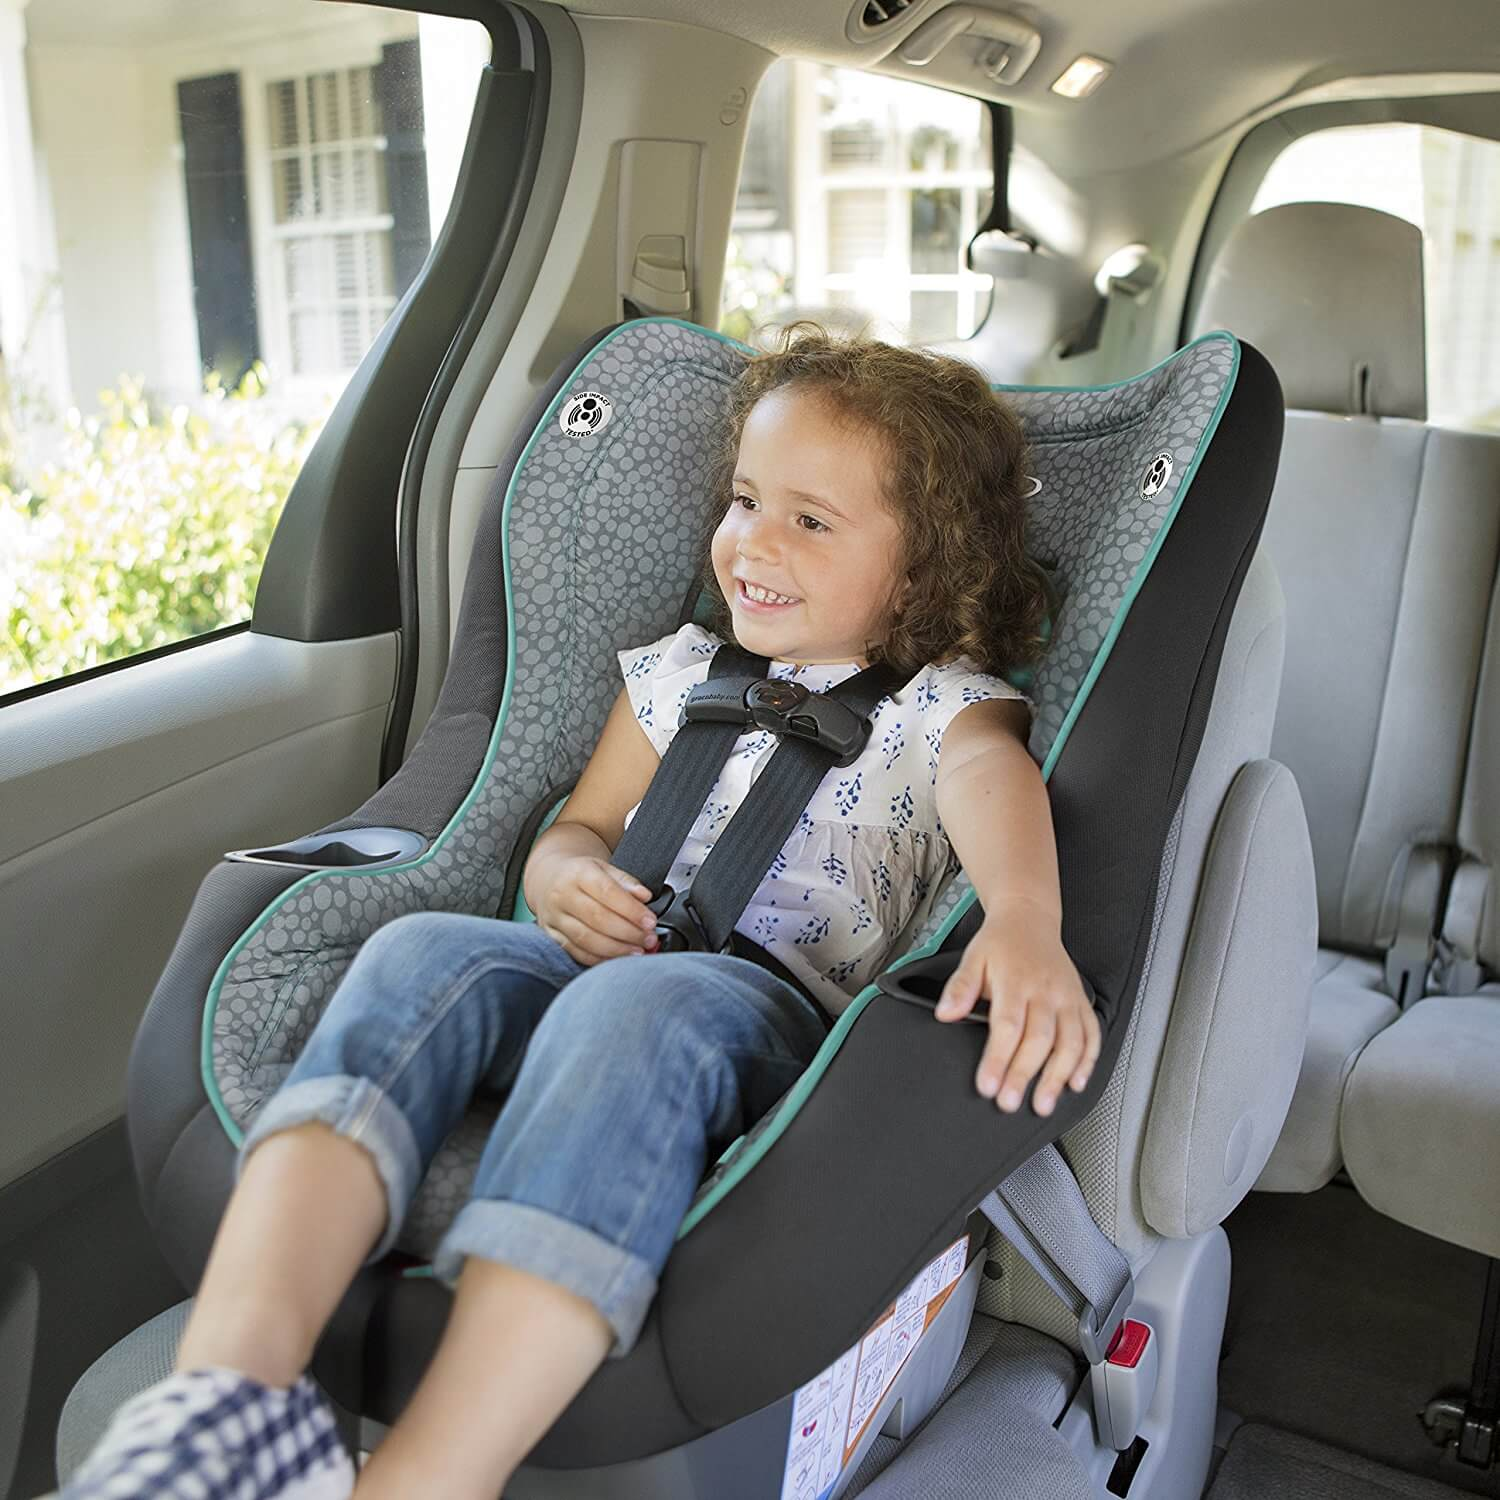 Majestic Kids Review Graco Myride Lx Graco Myride Lx A Car Seat All Sizes Graco Myride 65 Target Graco My Ride 65 Car Seat baby Graco Myride 65